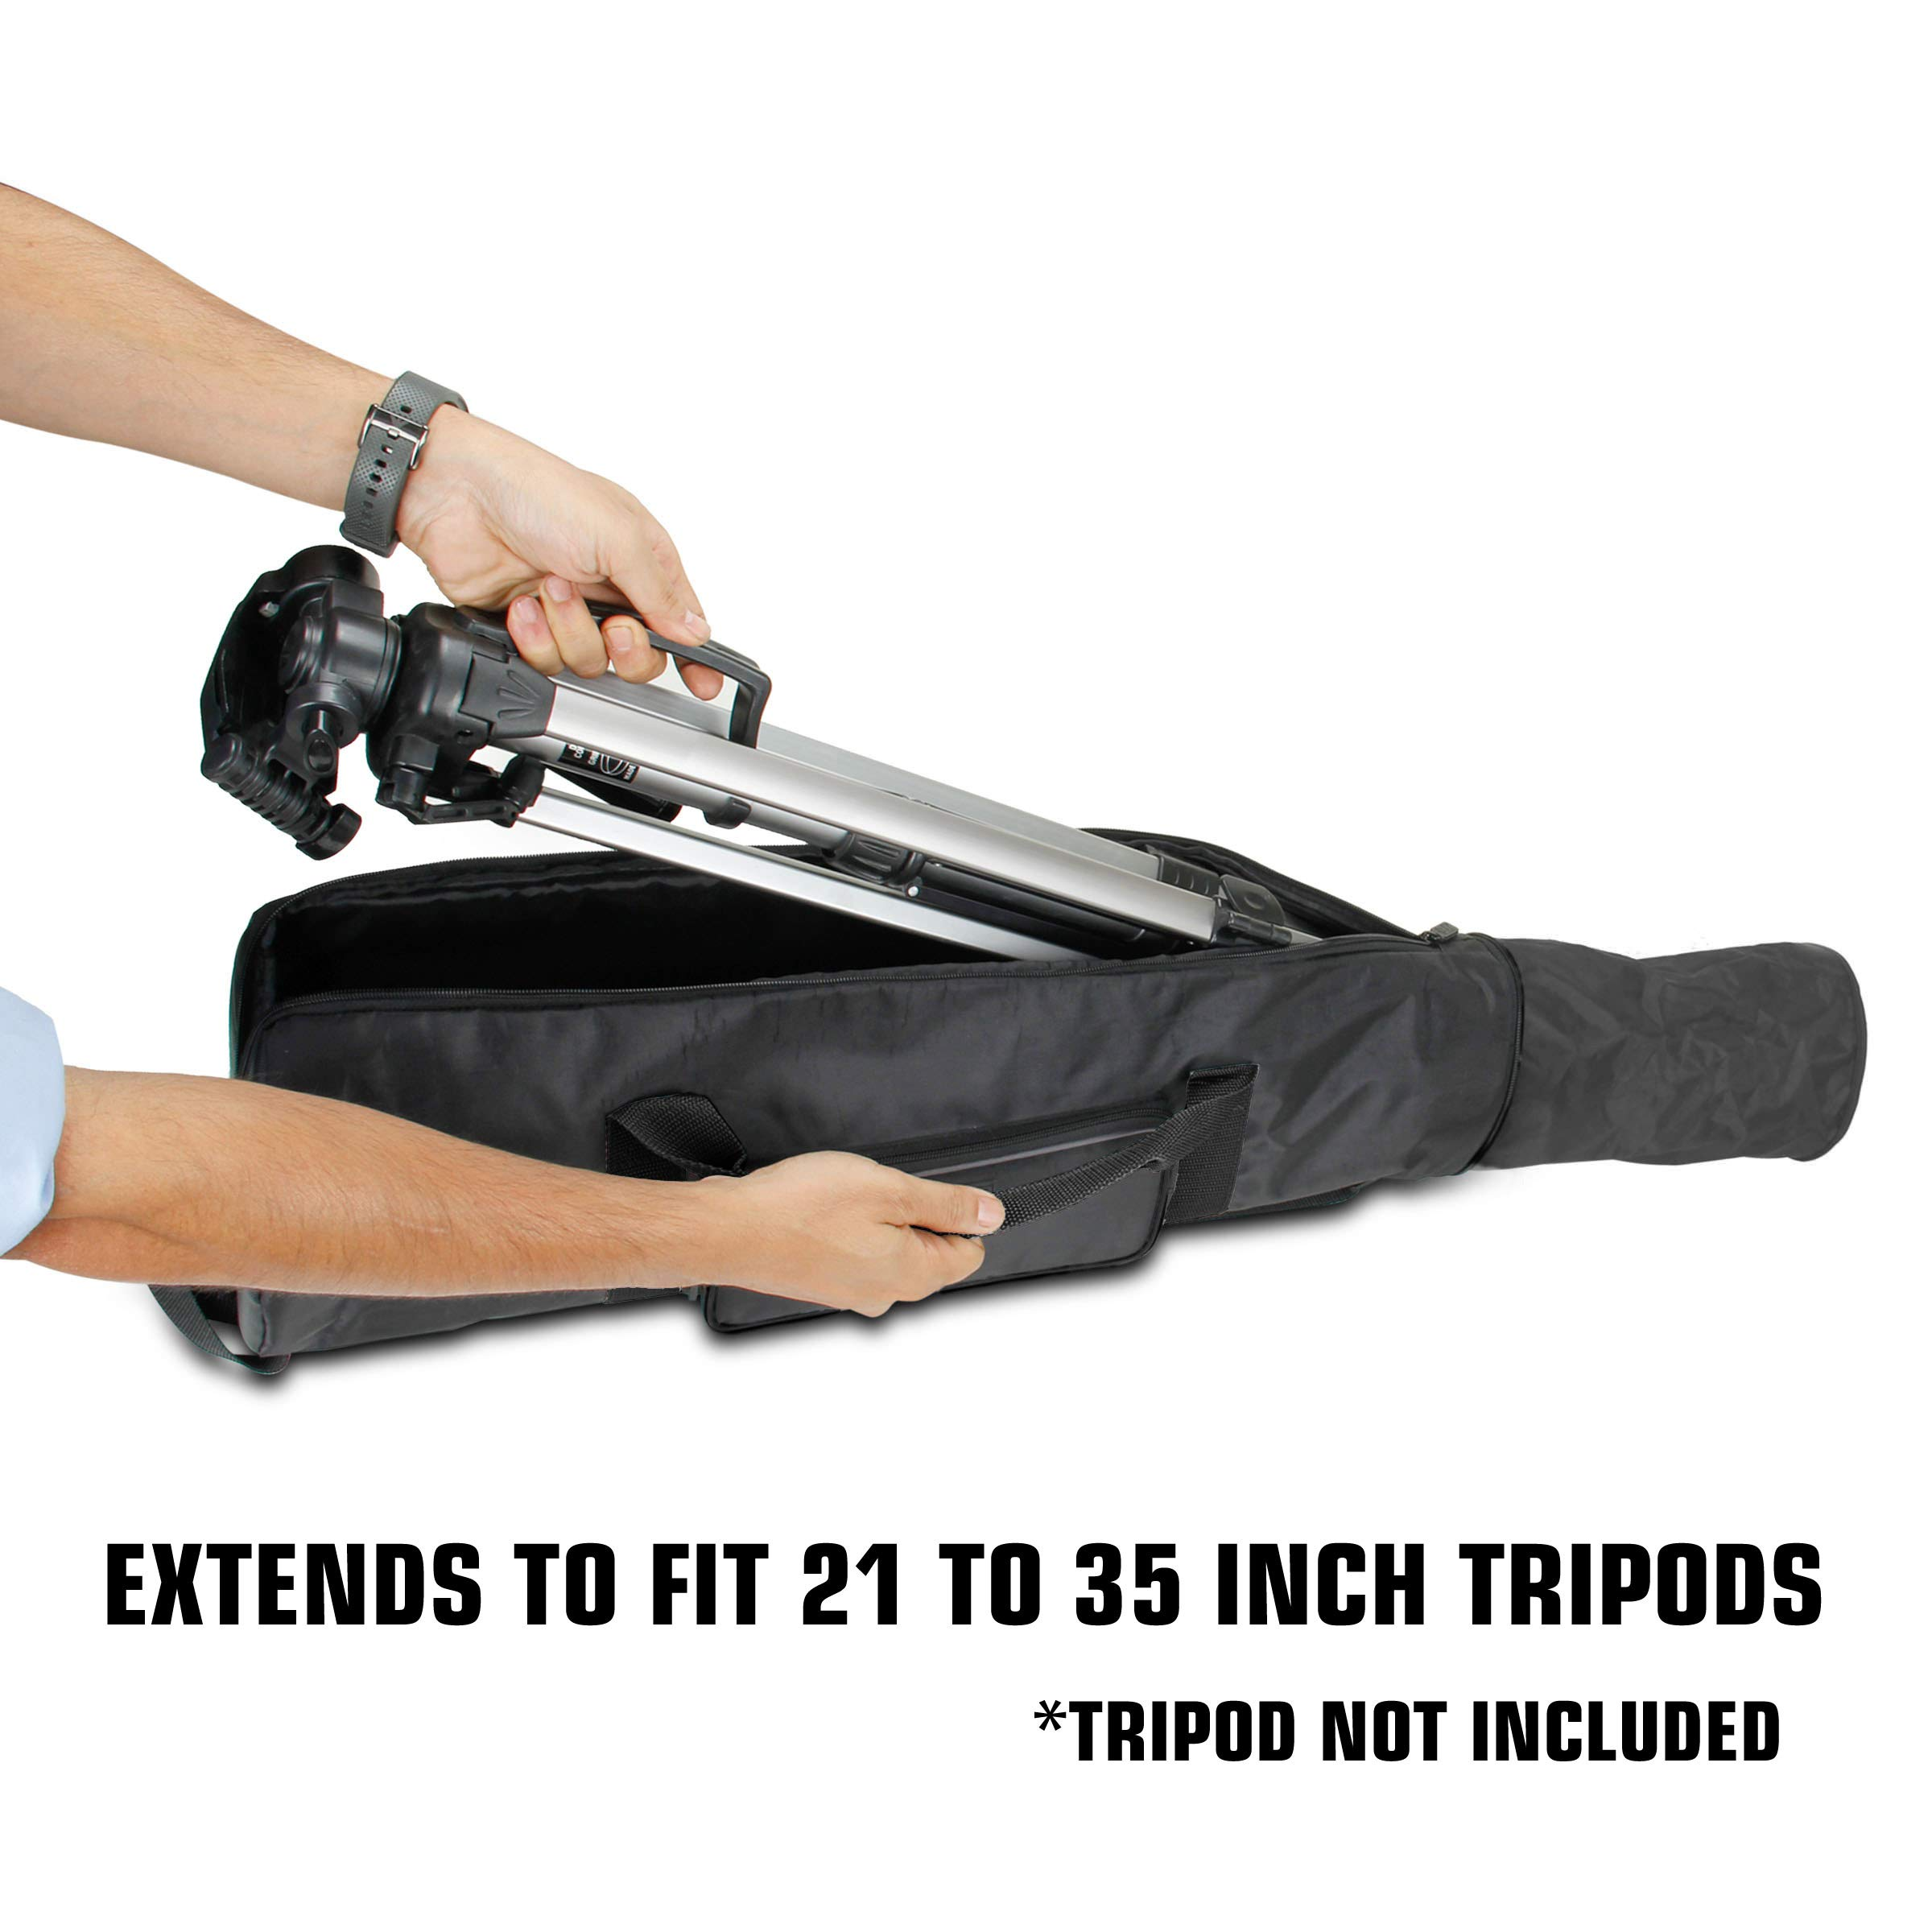 USA Gear Padded Tripod Case Bag - Holds Tripods from 21'' to 35'' Folded with Shoulder Strap, Adjustable Size Extension and Storage Pocket for Professional Camera Accessories and Photo Carrying Needs by USA Gear (Image #4)